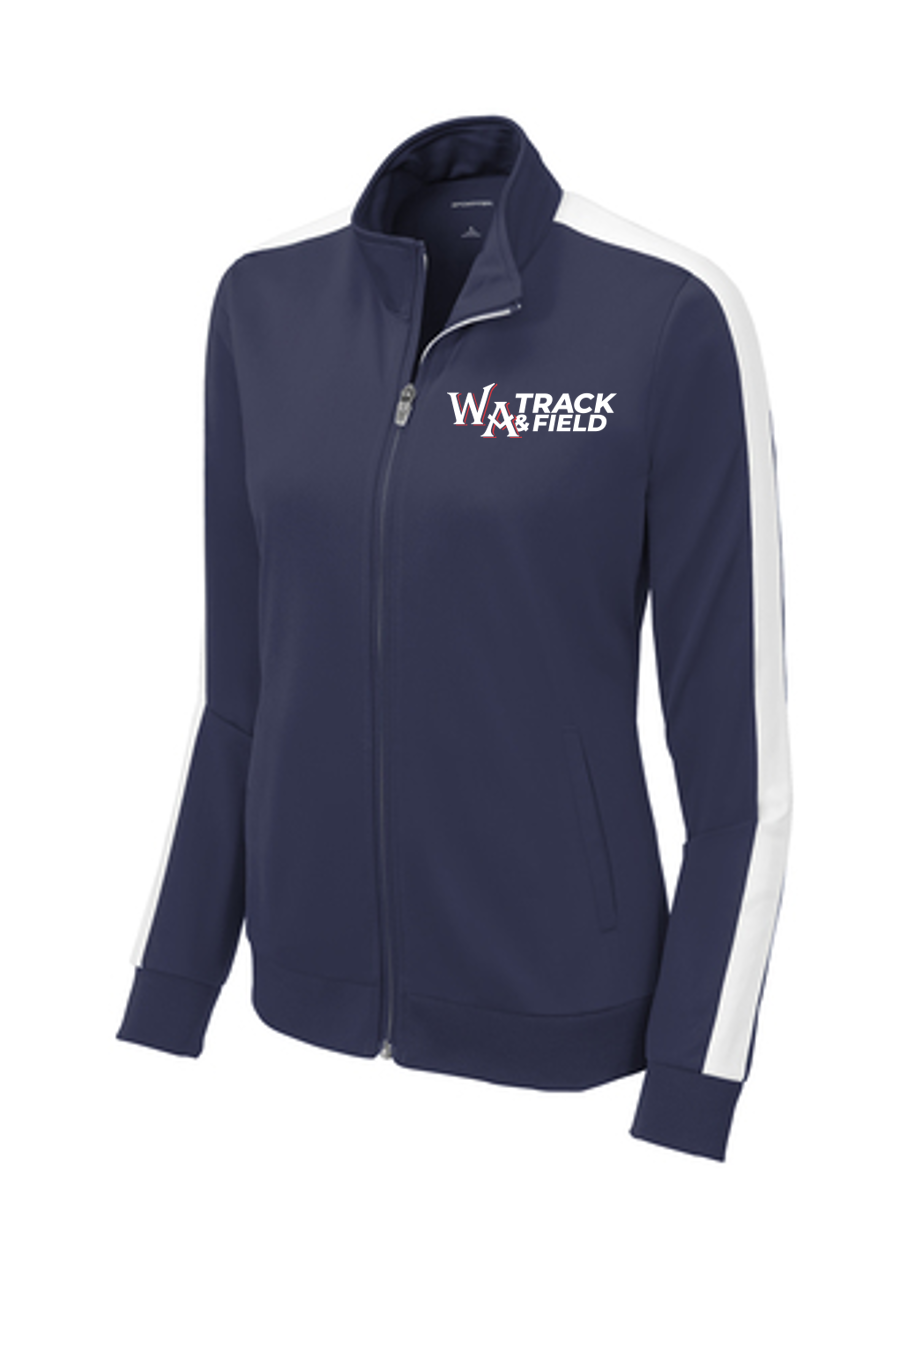 Ladies Tricot Track Jacket - Westminster Academy Track & Field